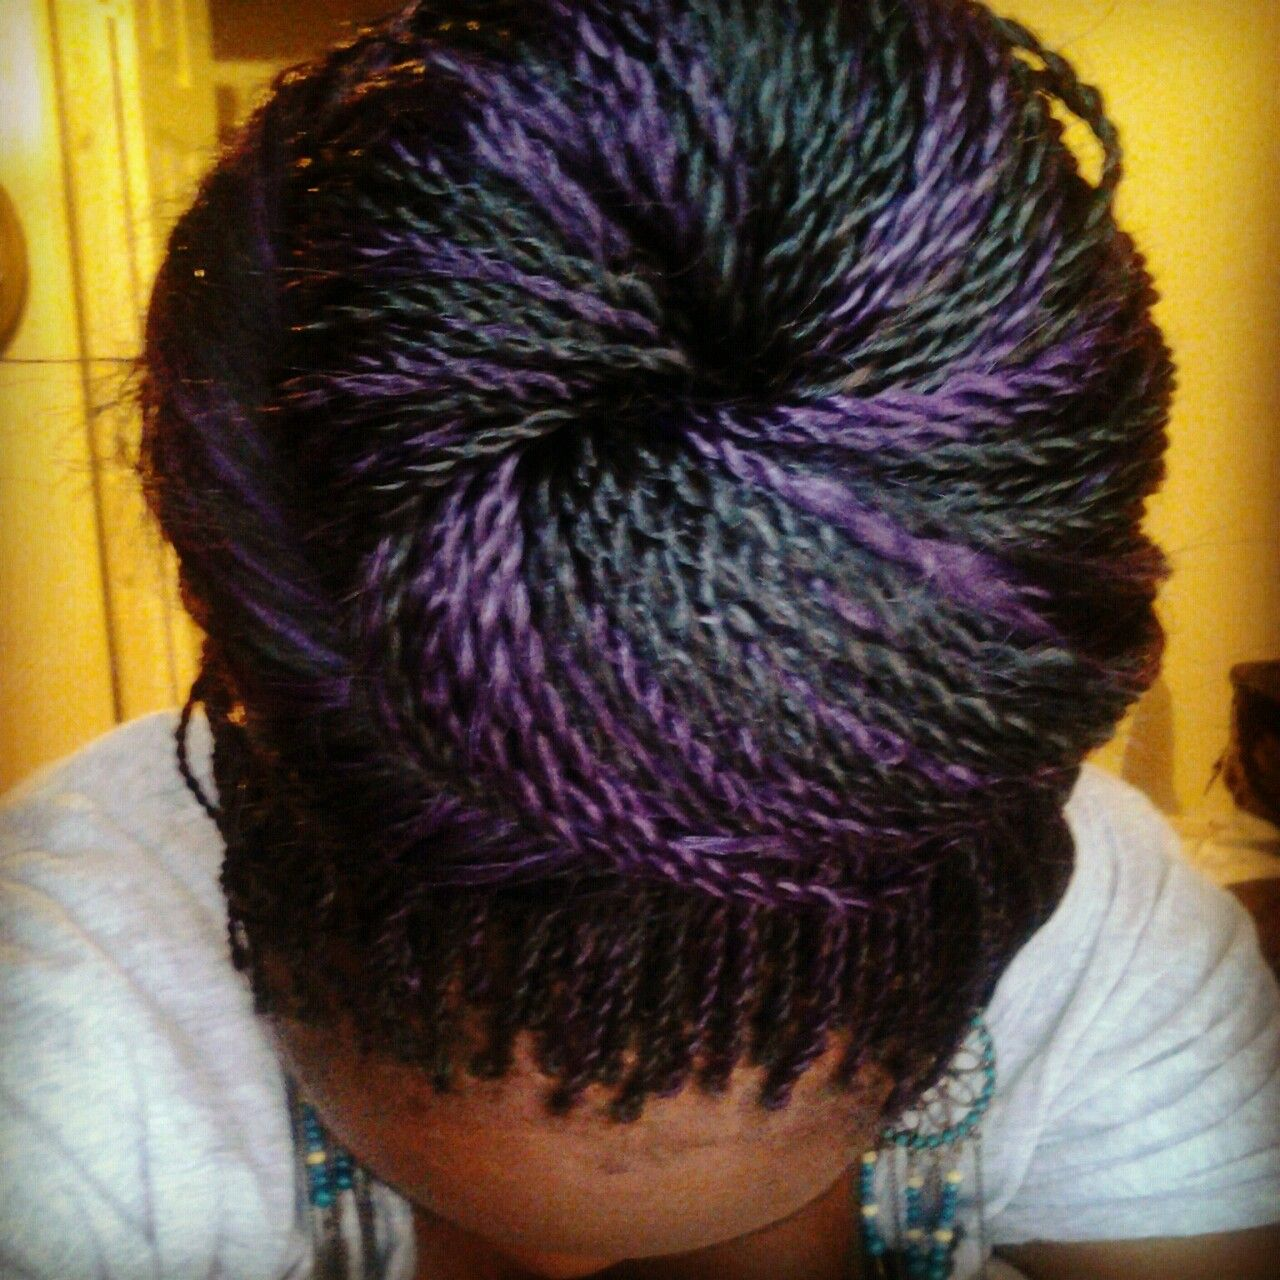 donut hair style purple and black senegalese twists hair amp 1153